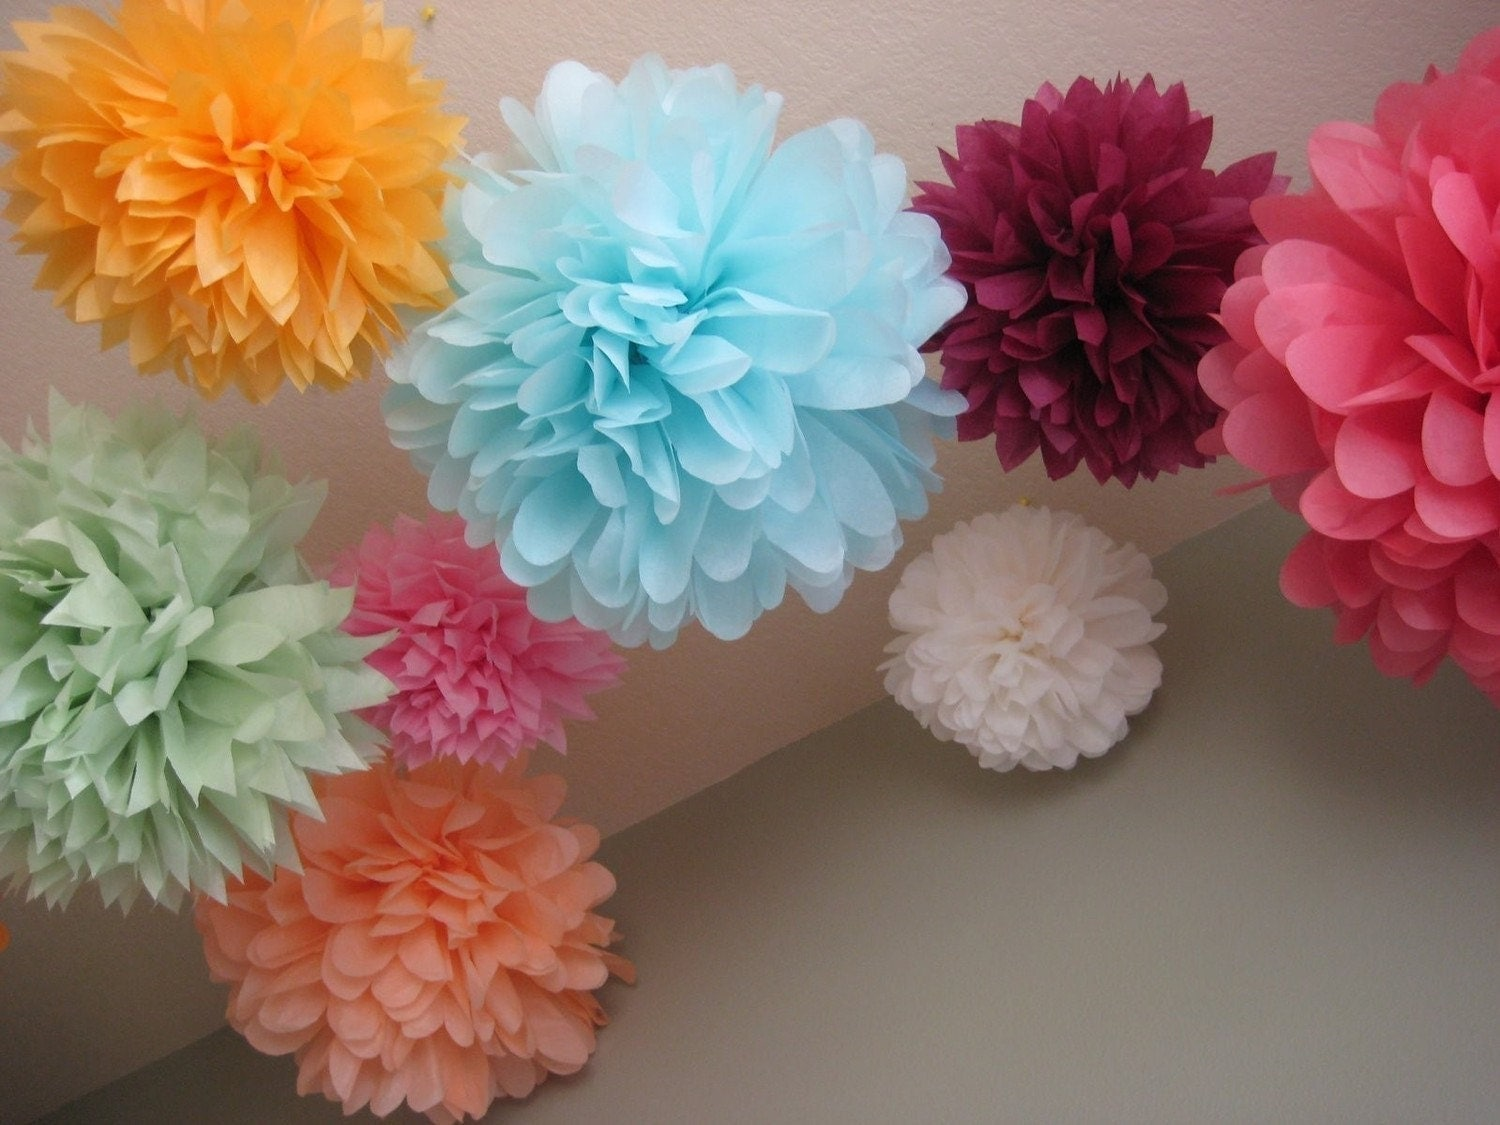 20 tissue paper pom poms wedding decoration by prosttothehost